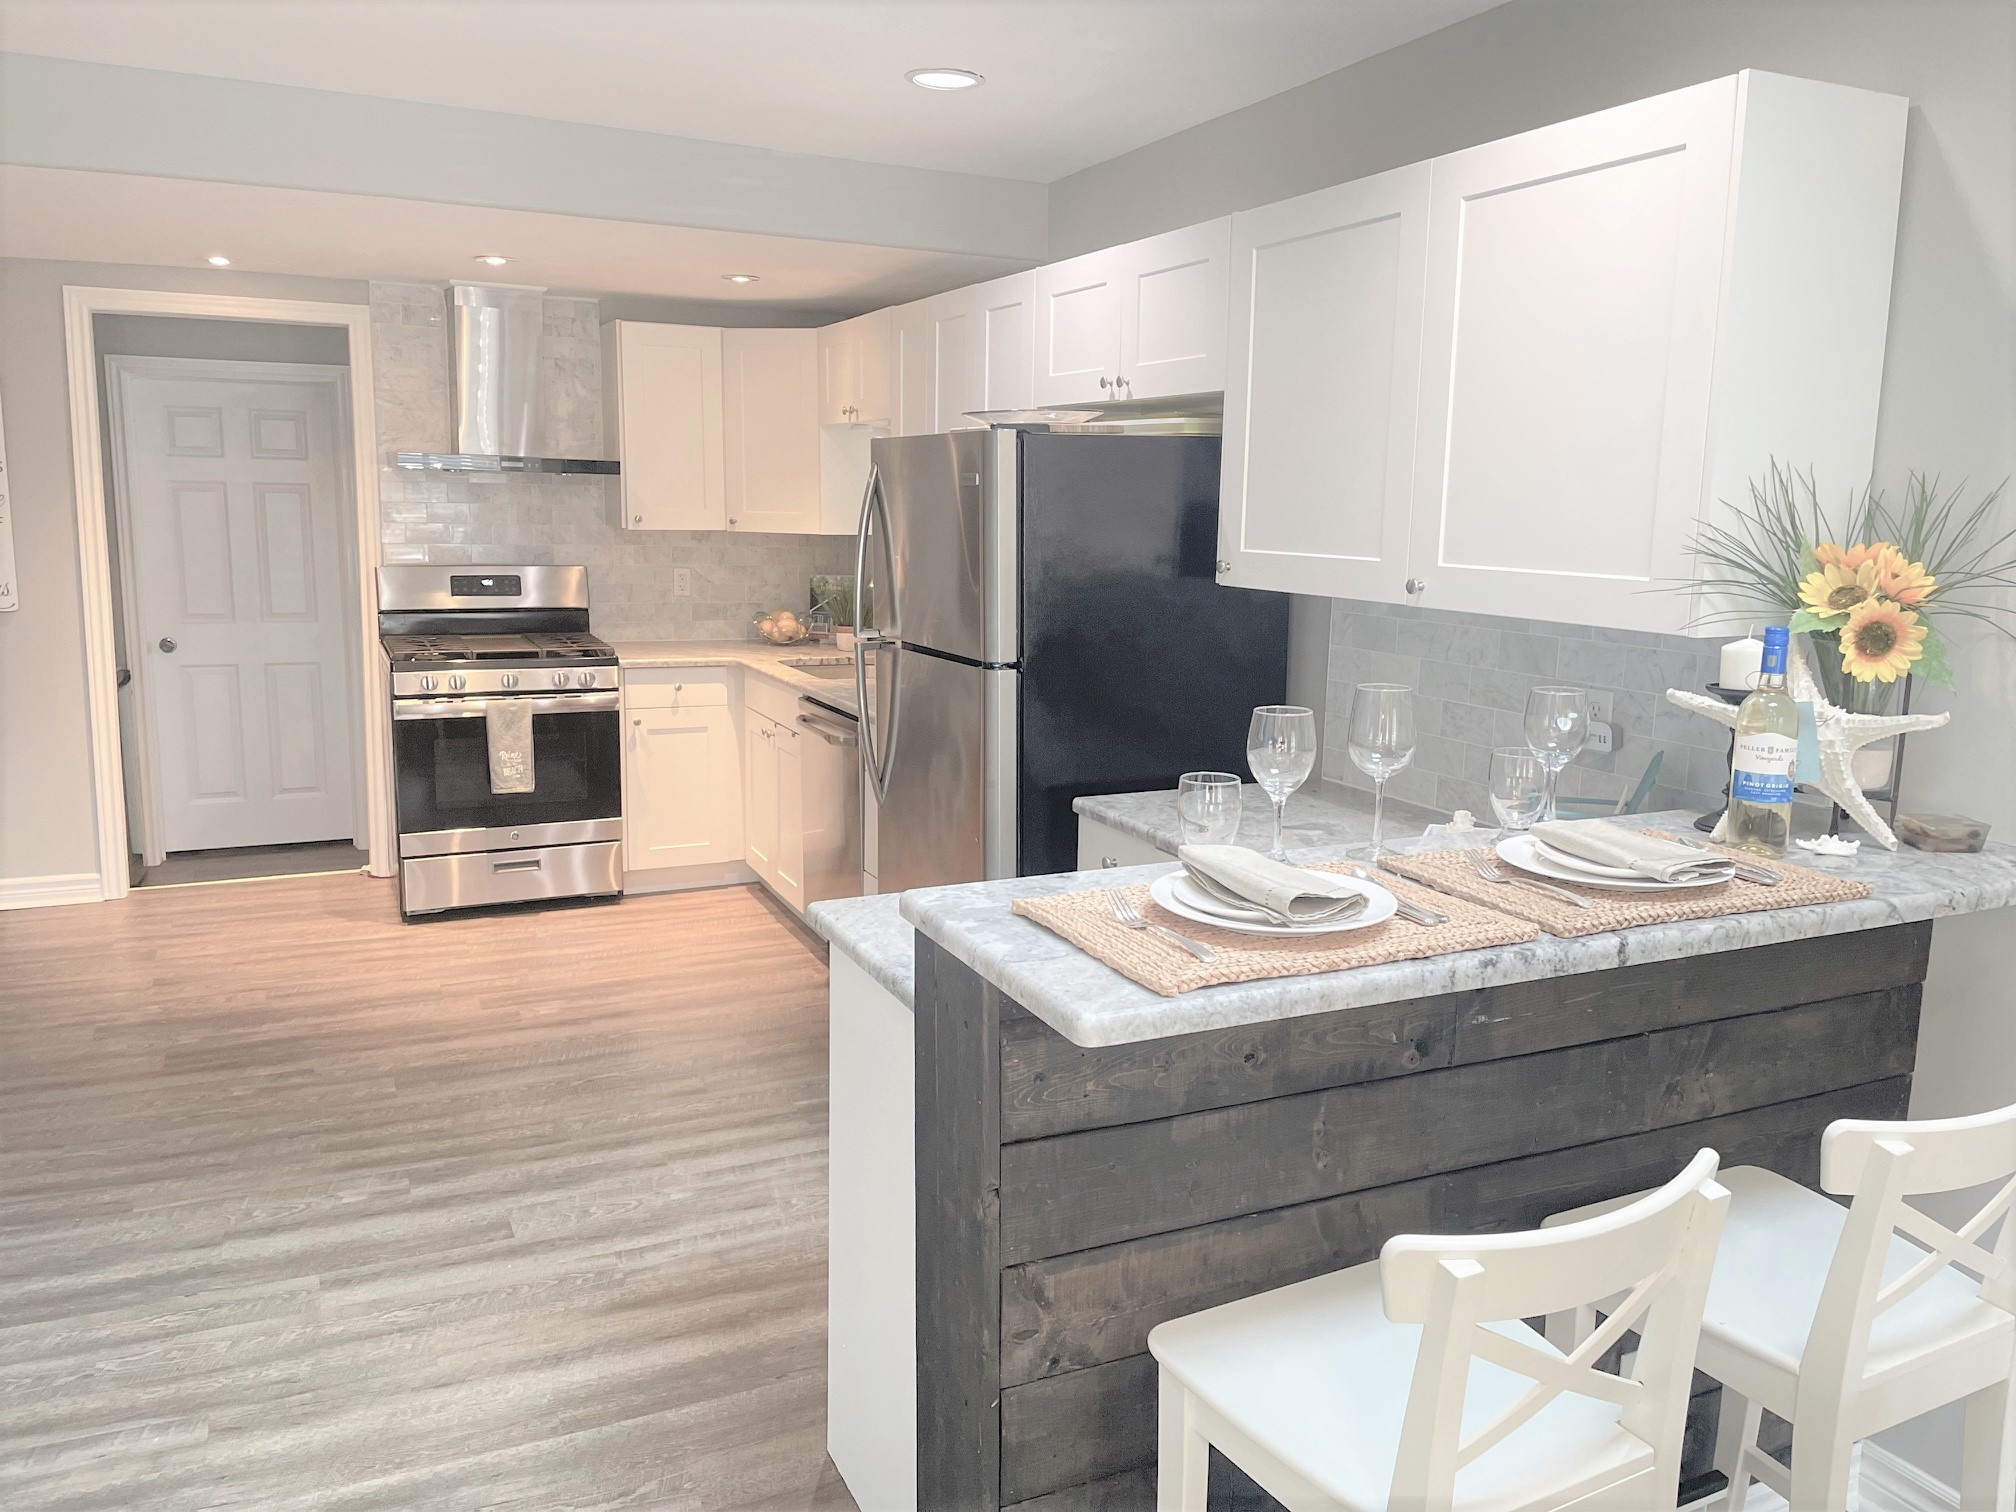 Home Away From Home-Kitchen4-Holiday Homes Property Management-Crystal Beach ON